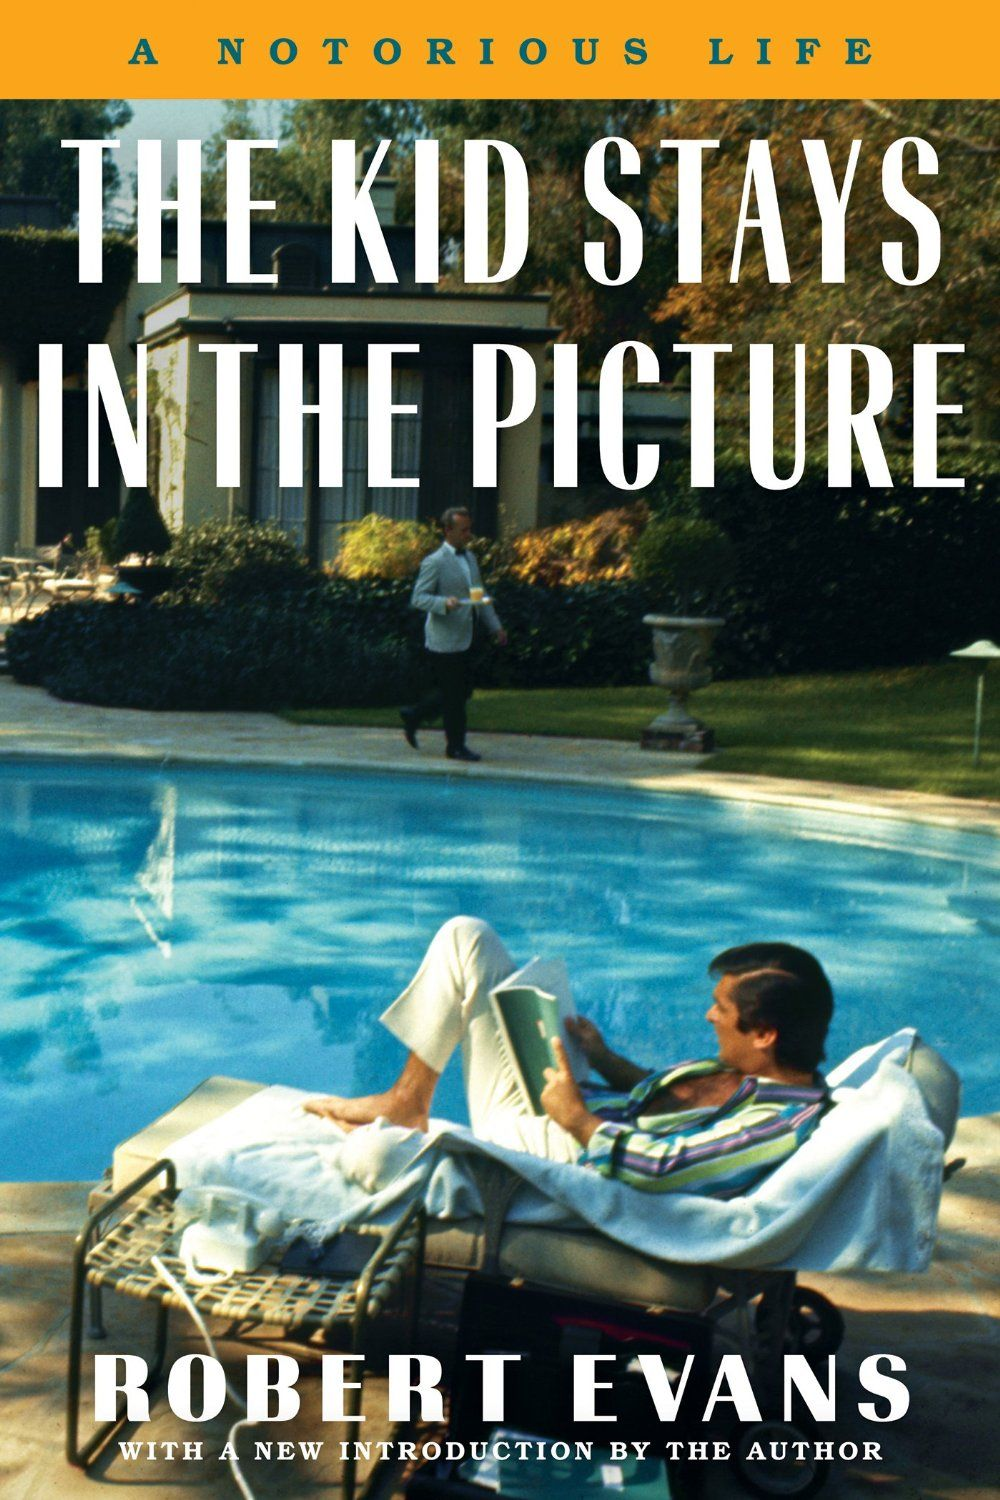 The Kid Stays in the Picture: A Notorious Life  by Robert Evans ($2.99)